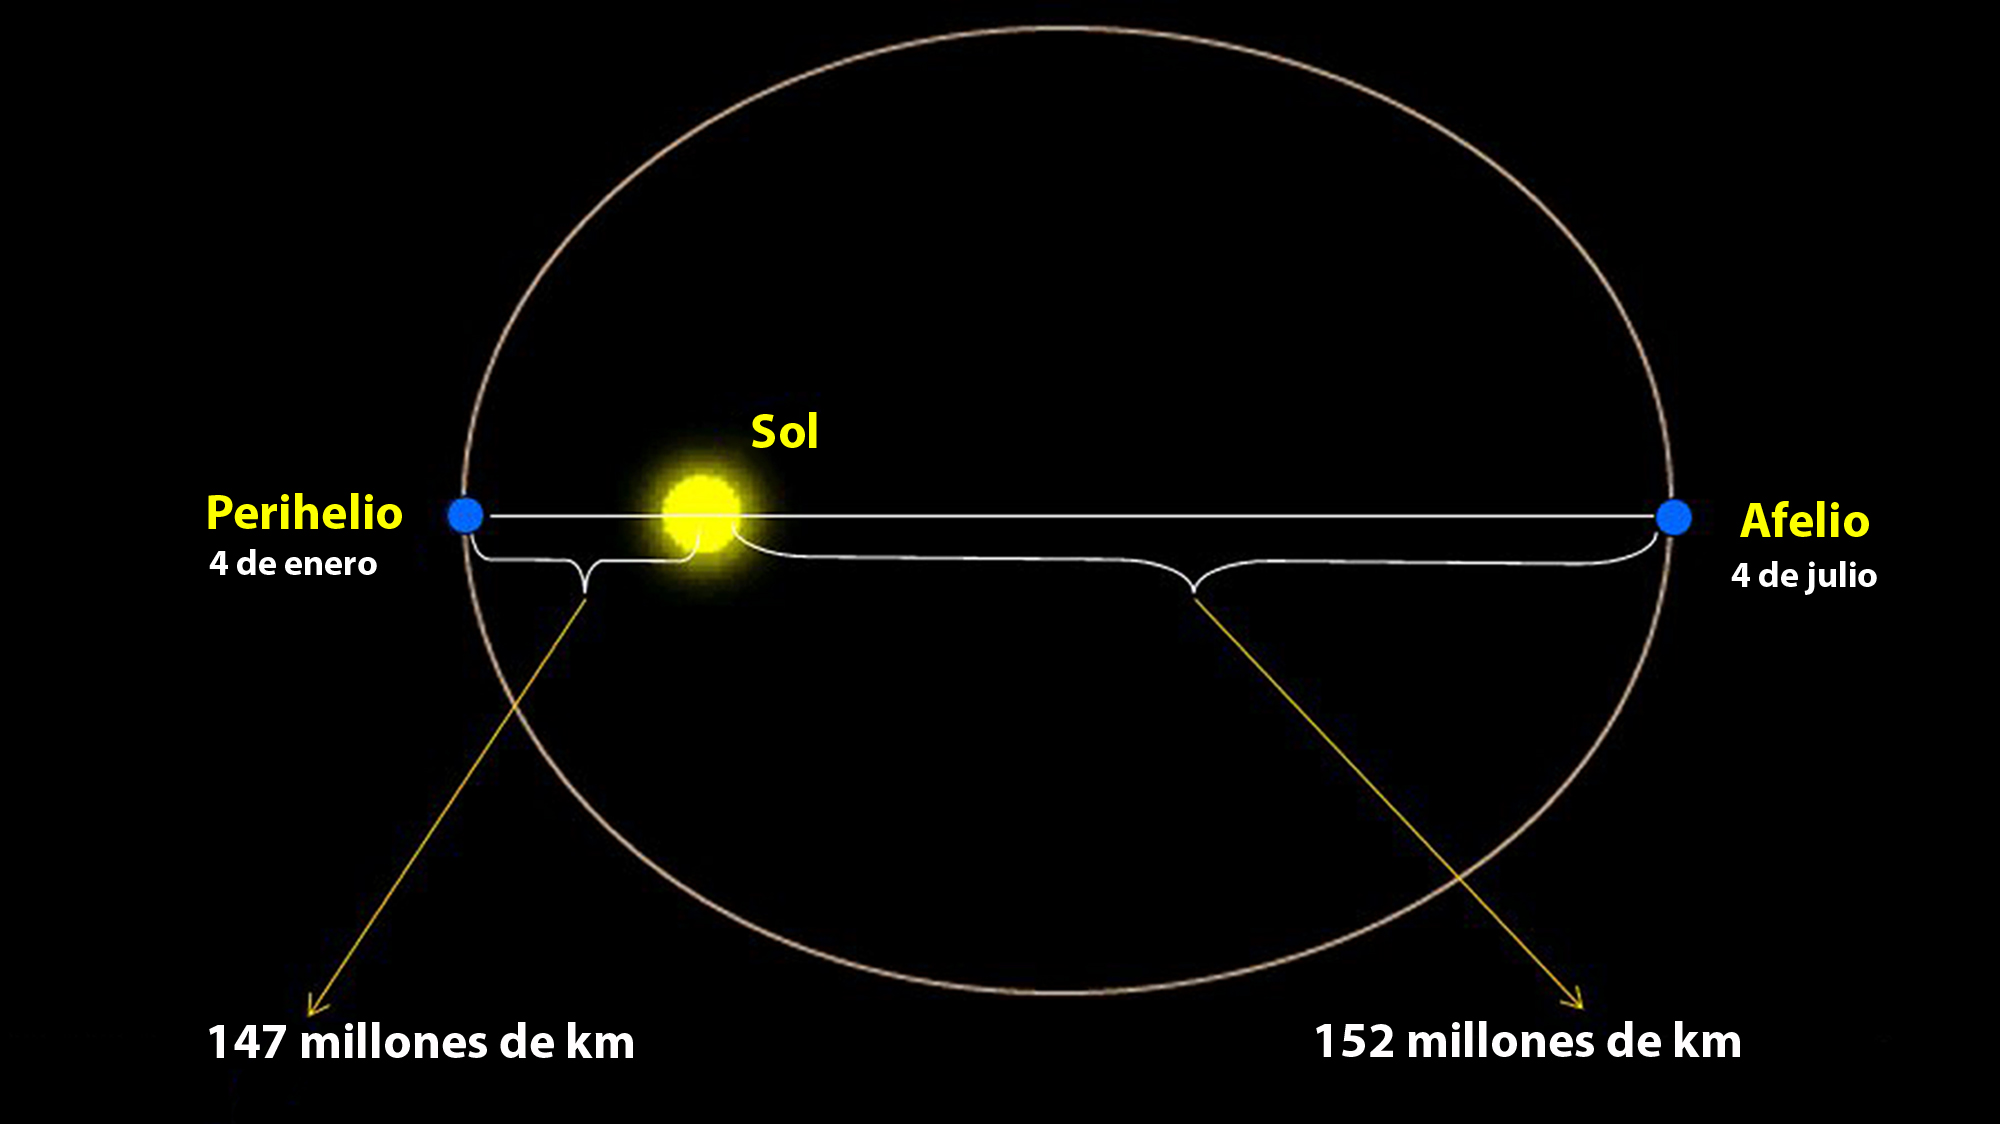 The earth slows down to a minimum during the aphelion.